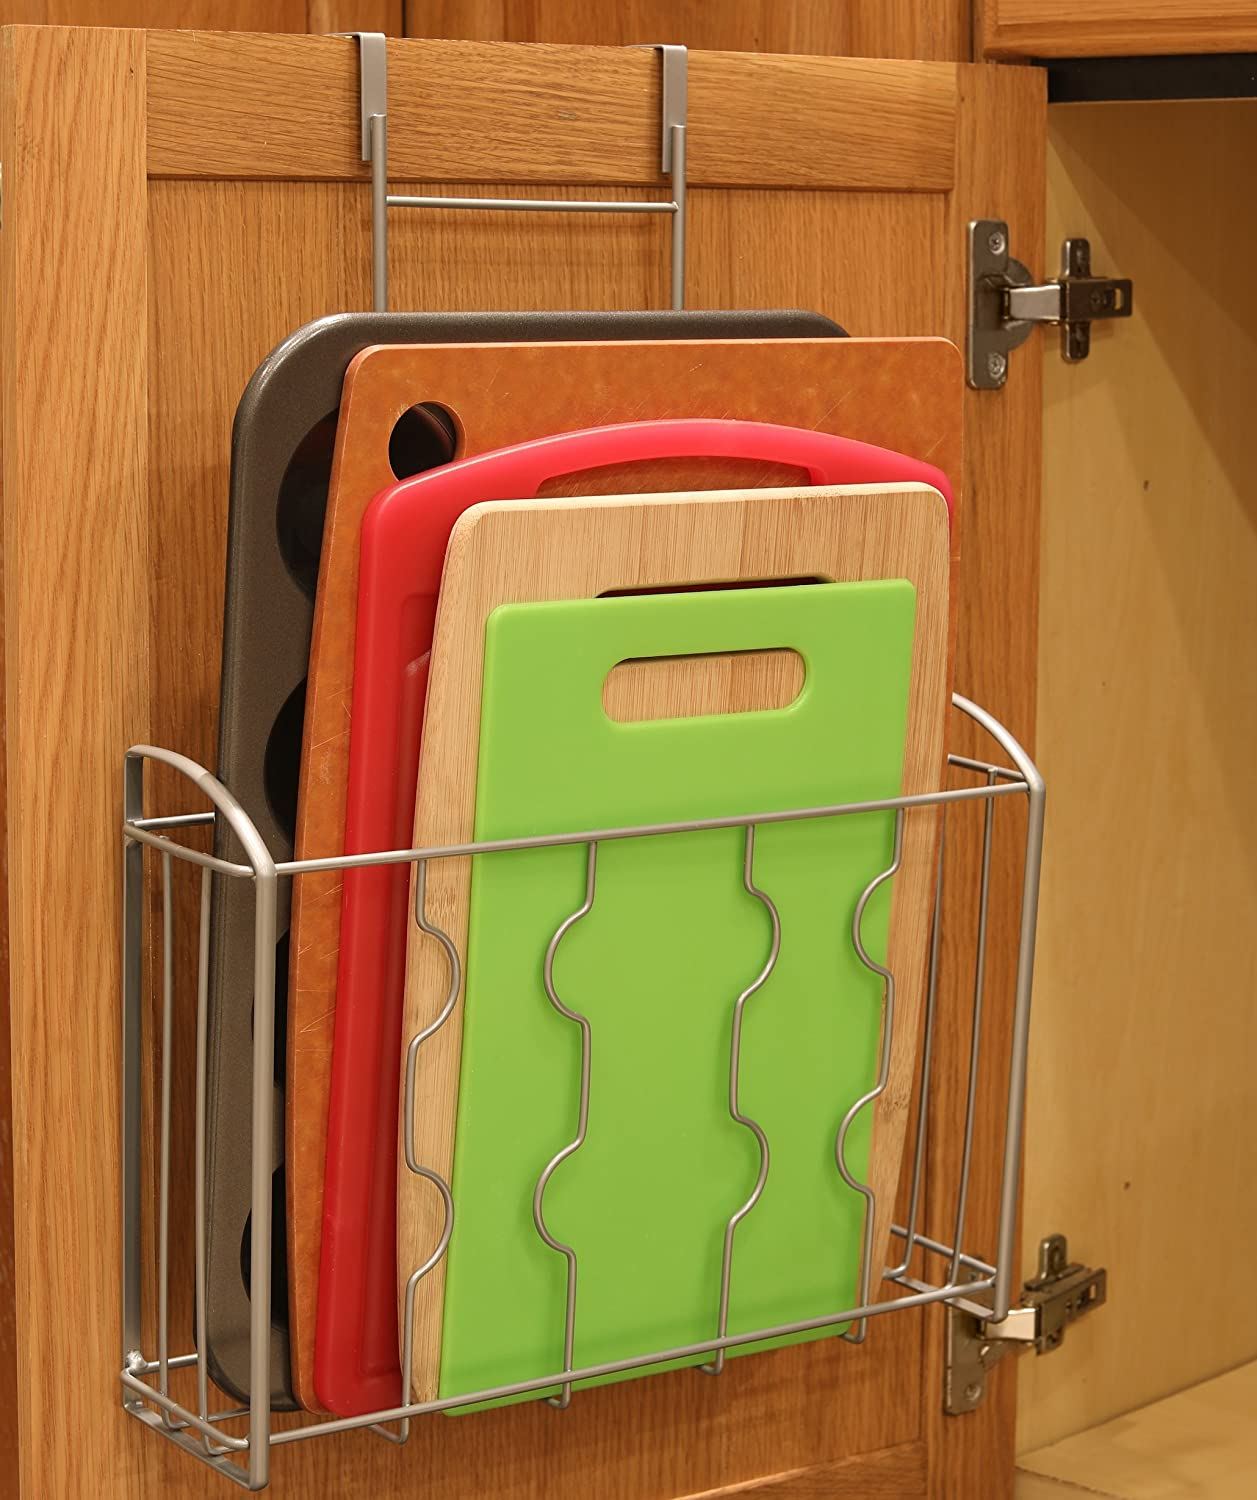 Amazon Simplehouseware Over The Cabinet Door Organizer Holder